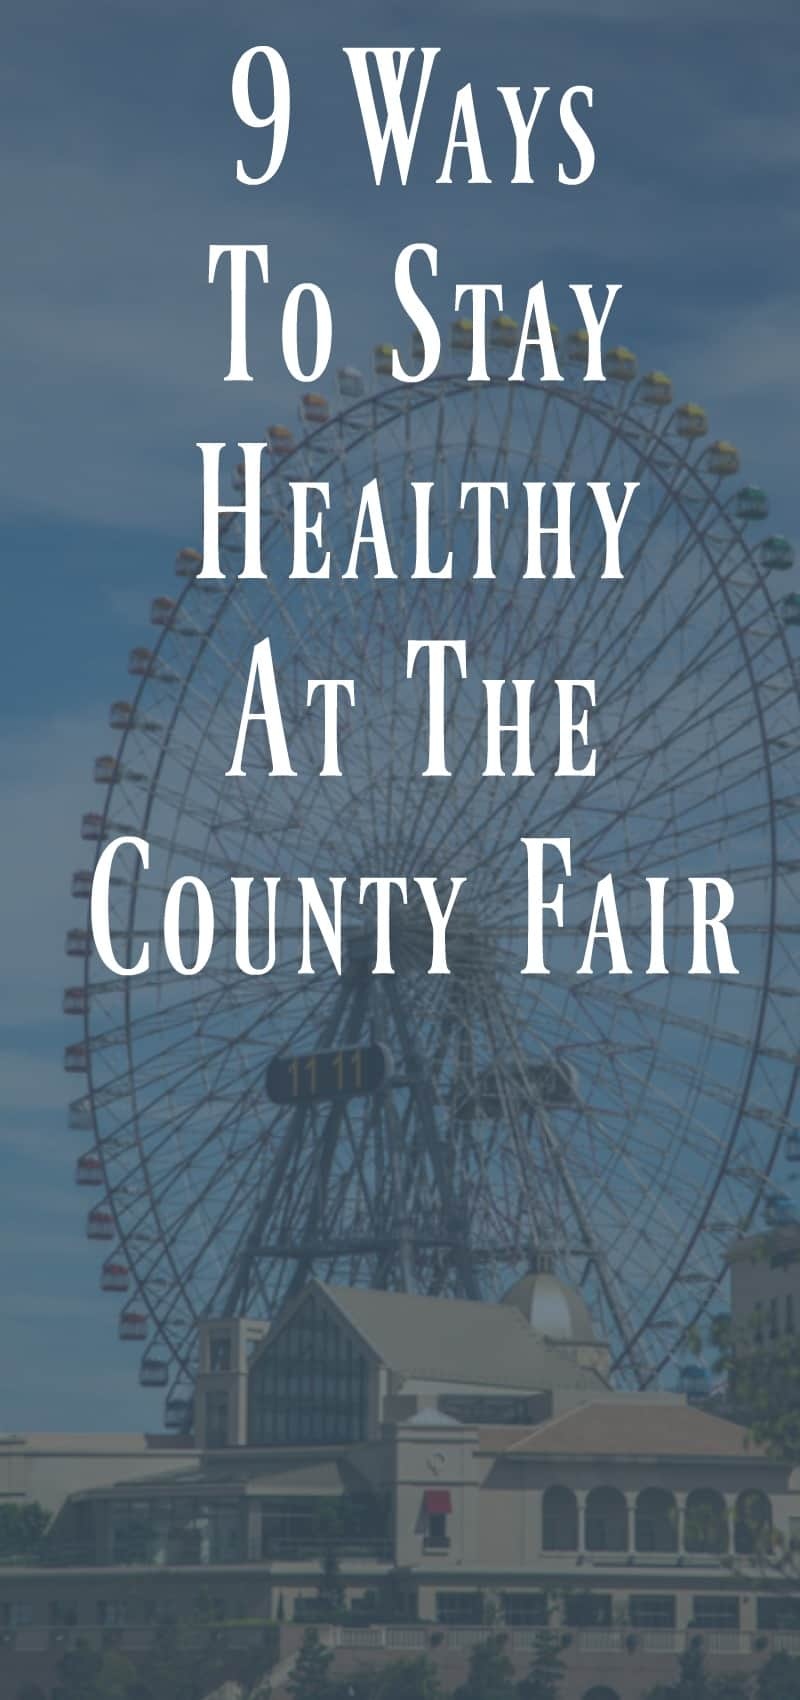 9 Ways to Stay Healthy at the County Fair